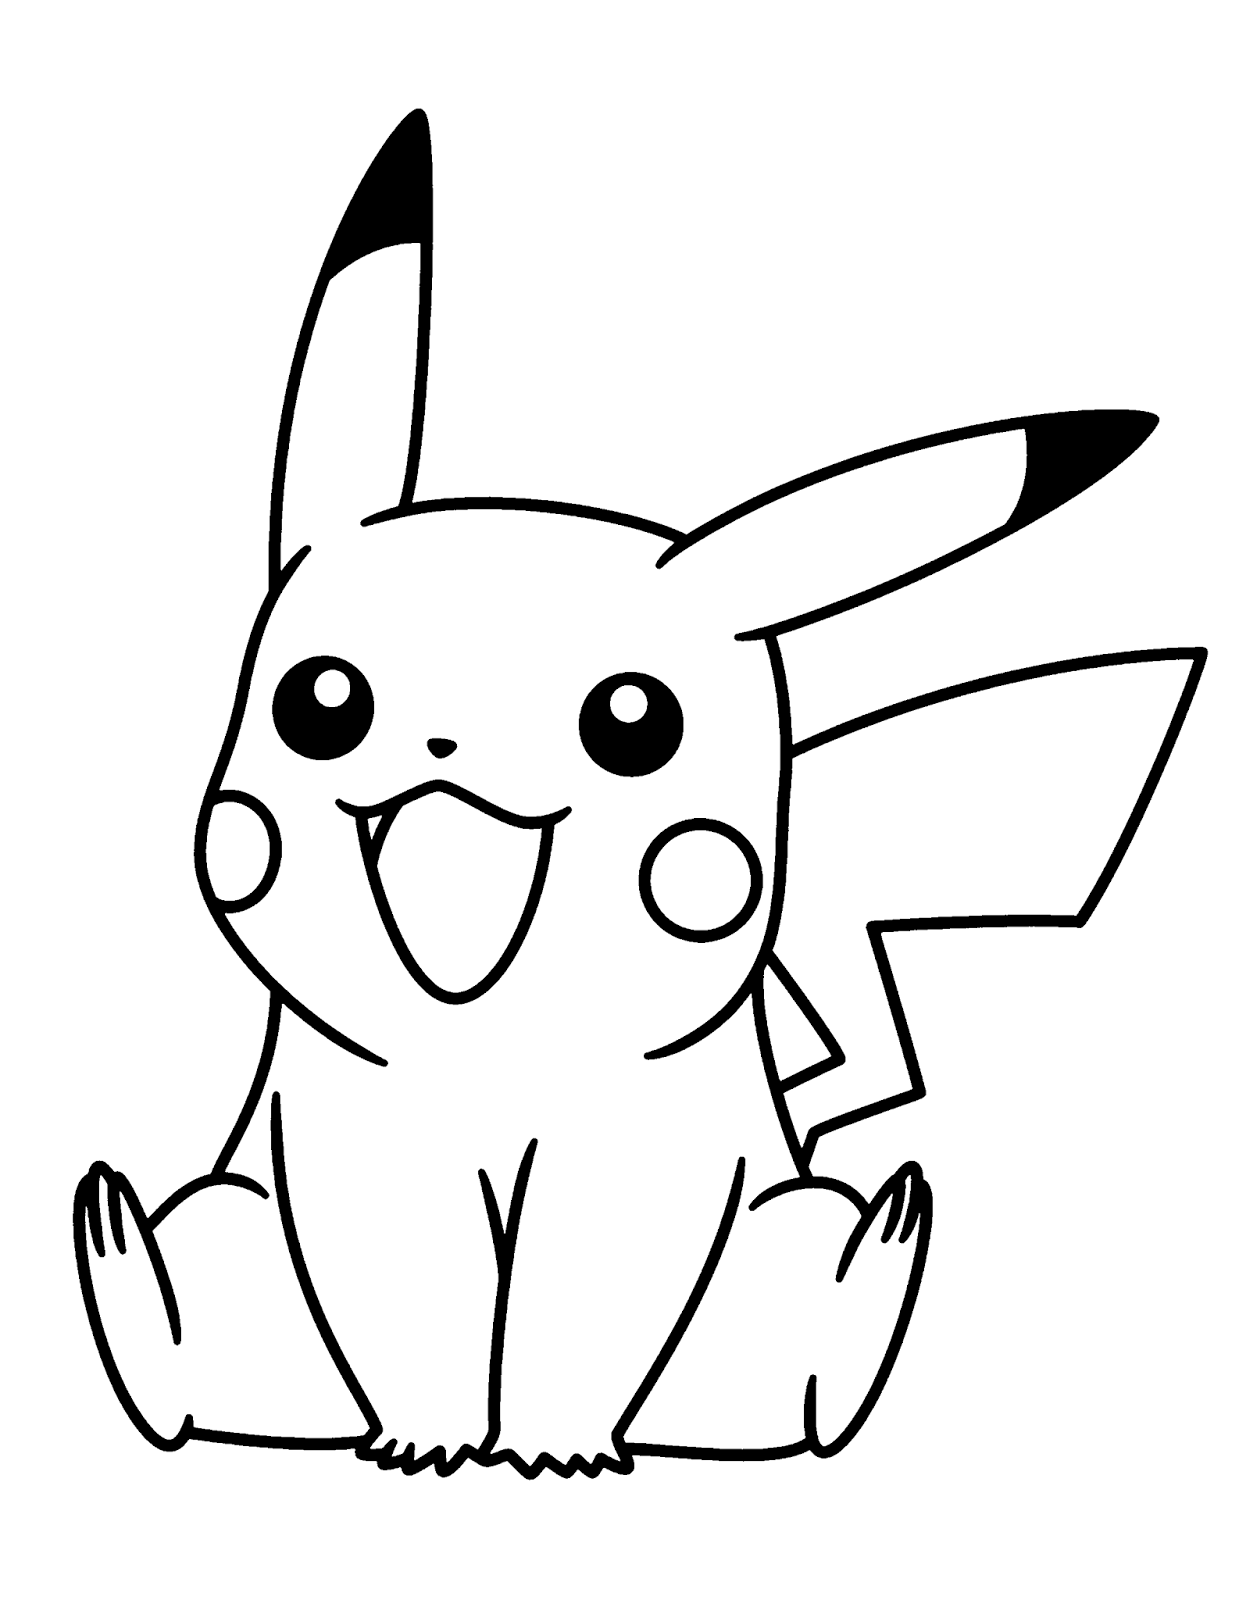 free pokemon coloring sheets all pokemon coloring pages download and print for free sheets coloring pokemon free